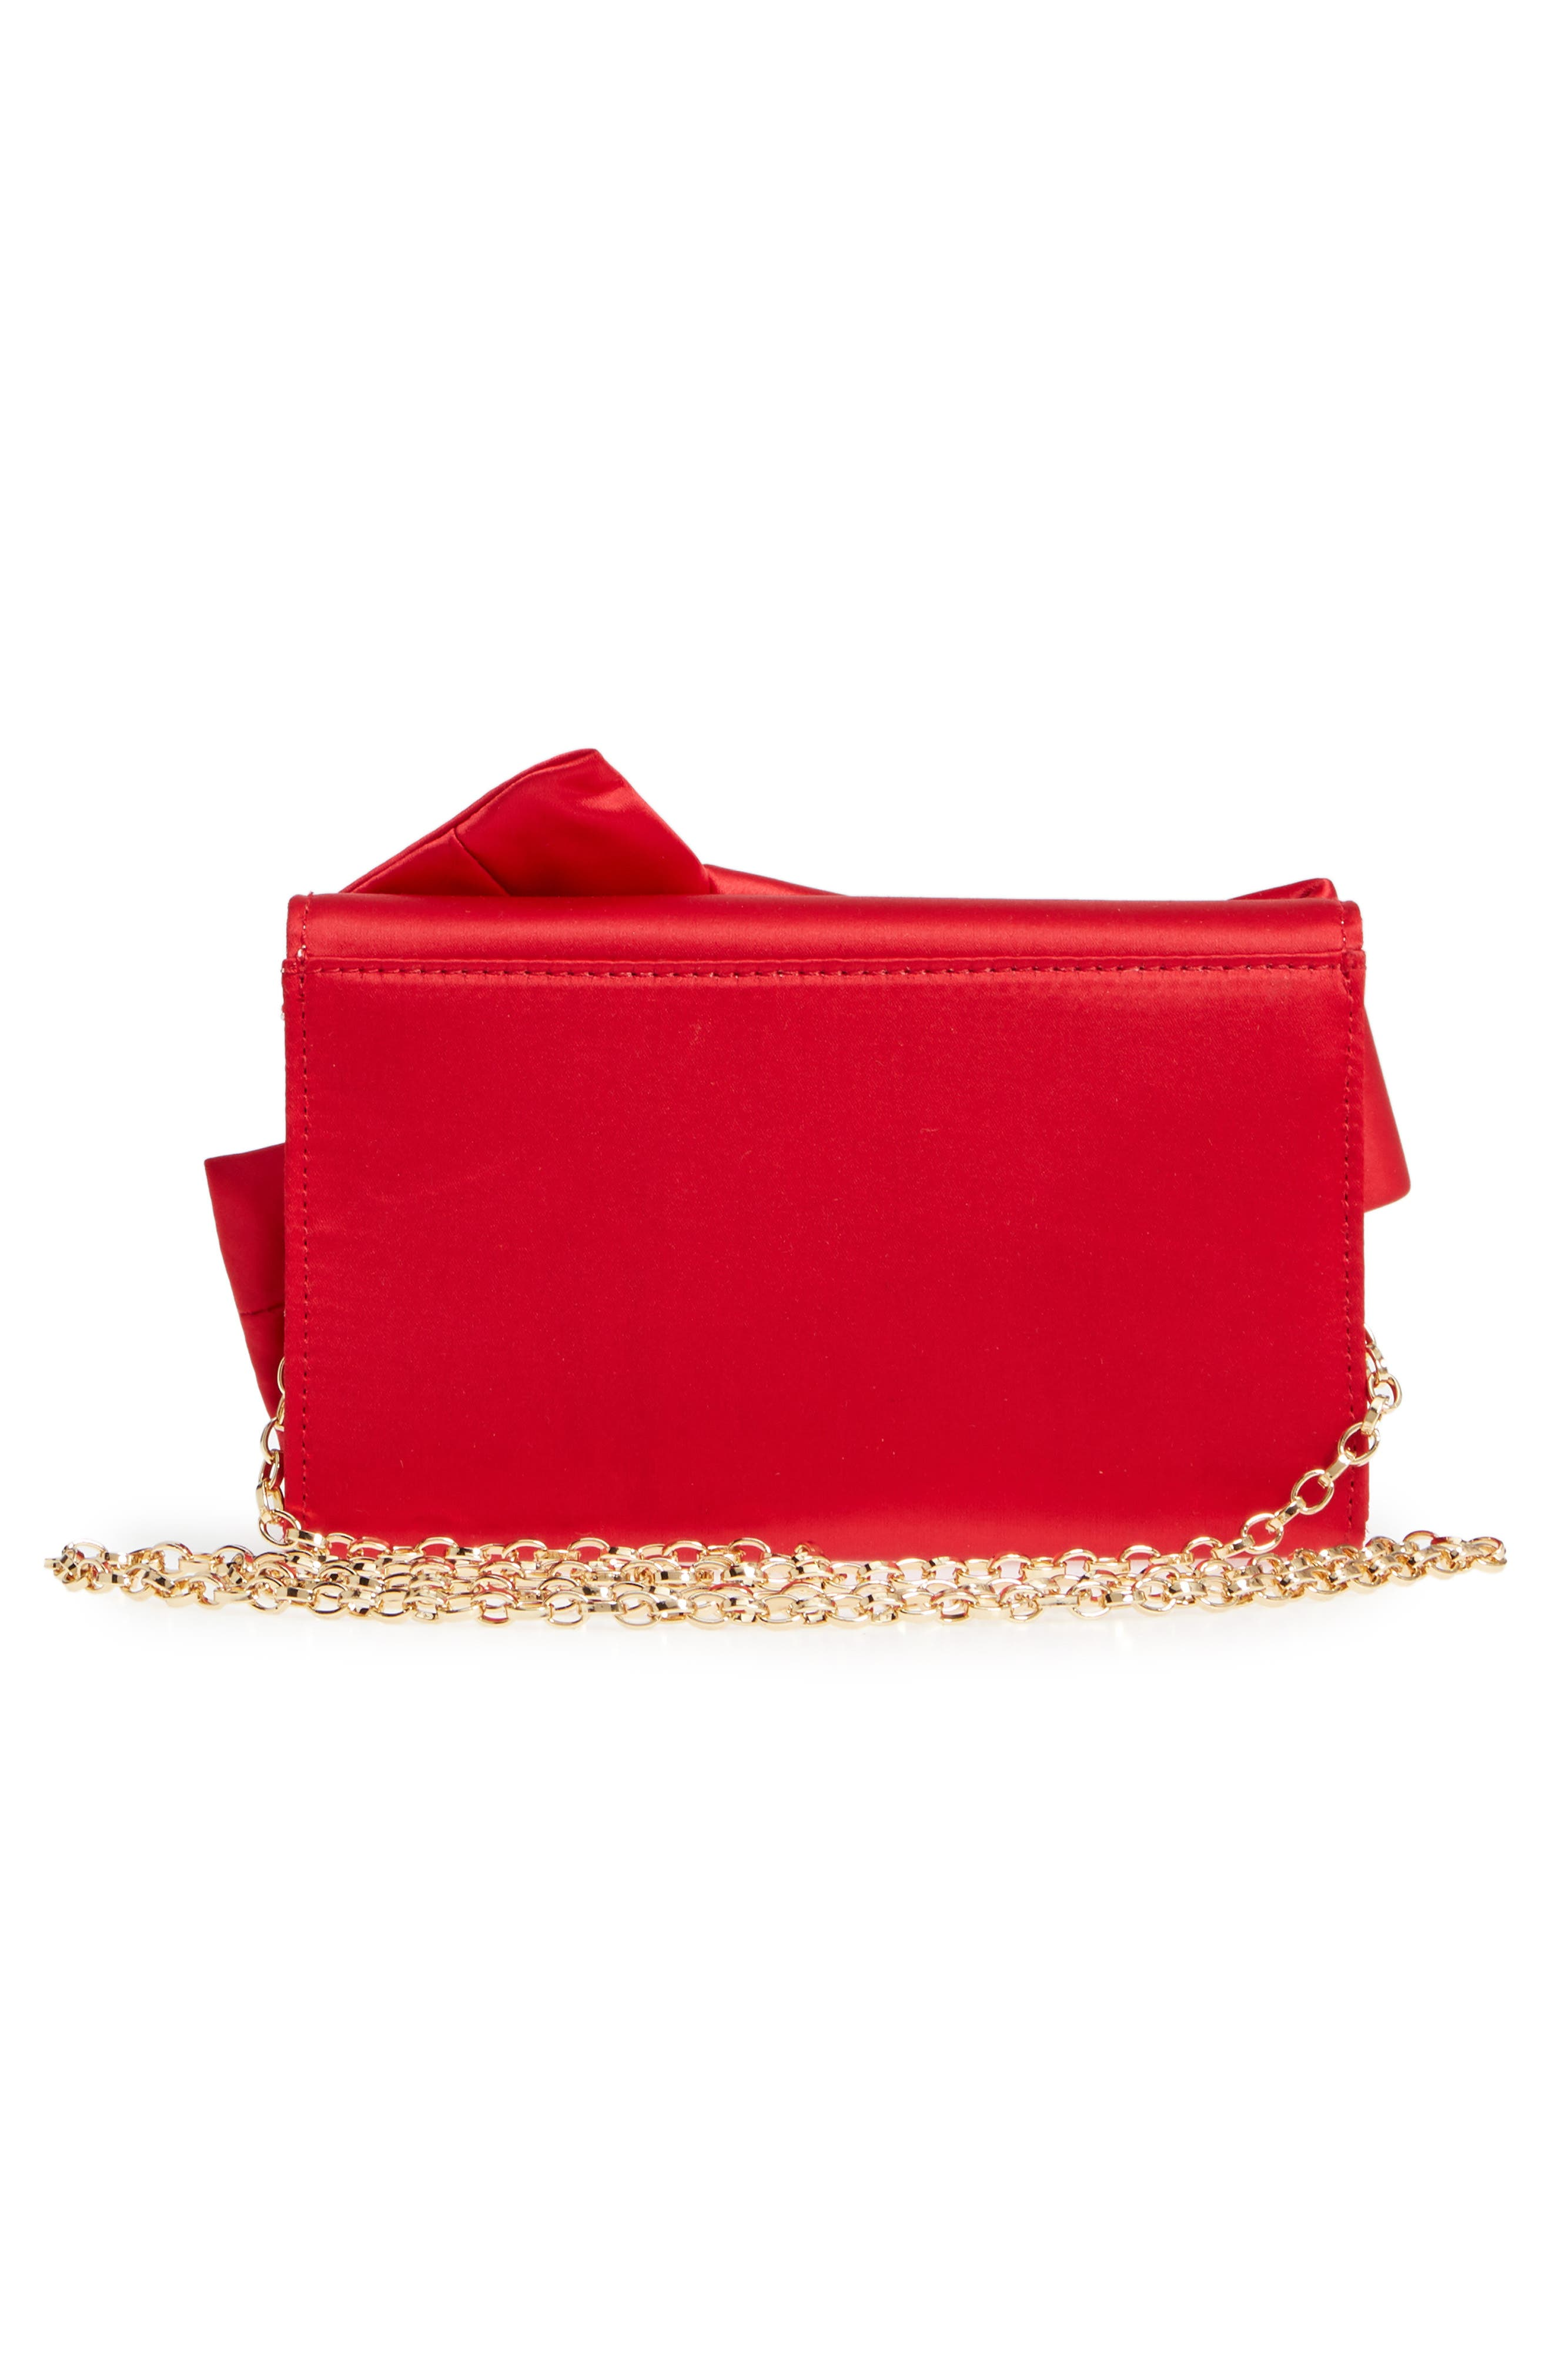 Fefee Satin Knotted Bow Clutch,                             Alternate thumbnail 3, color,                             BRIGHT RED